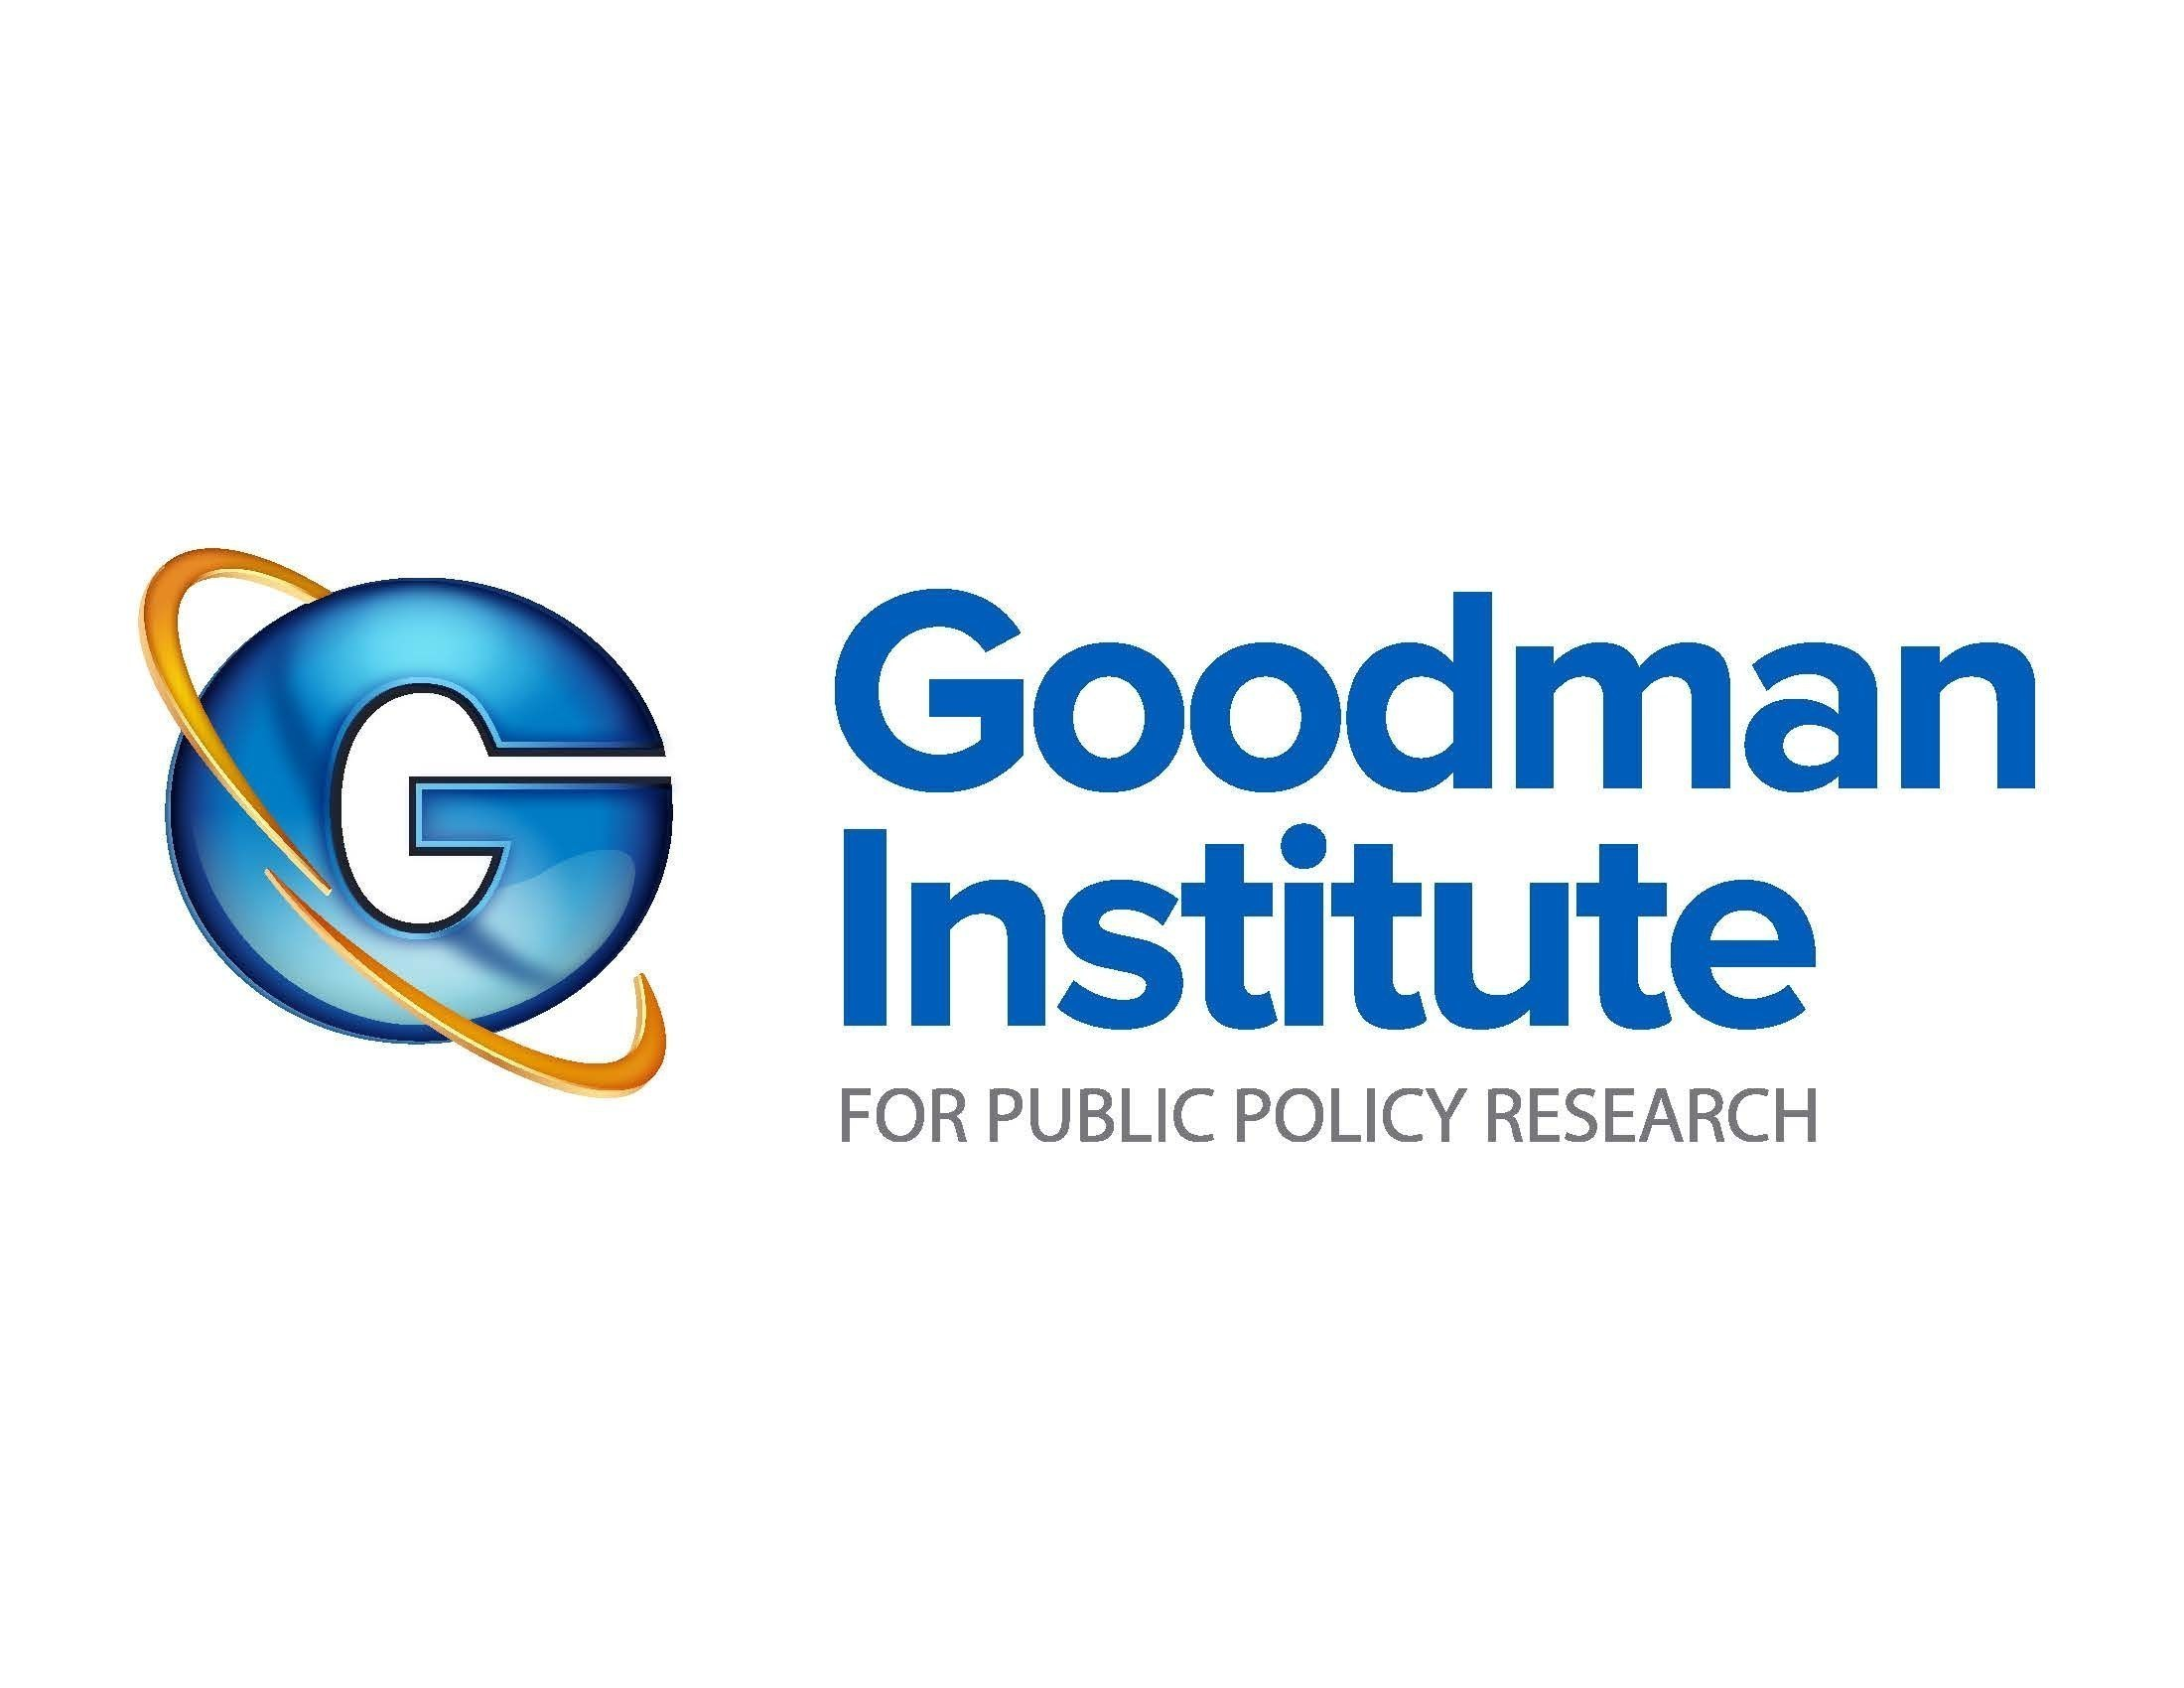 Goodman Institute for Public Policy Research